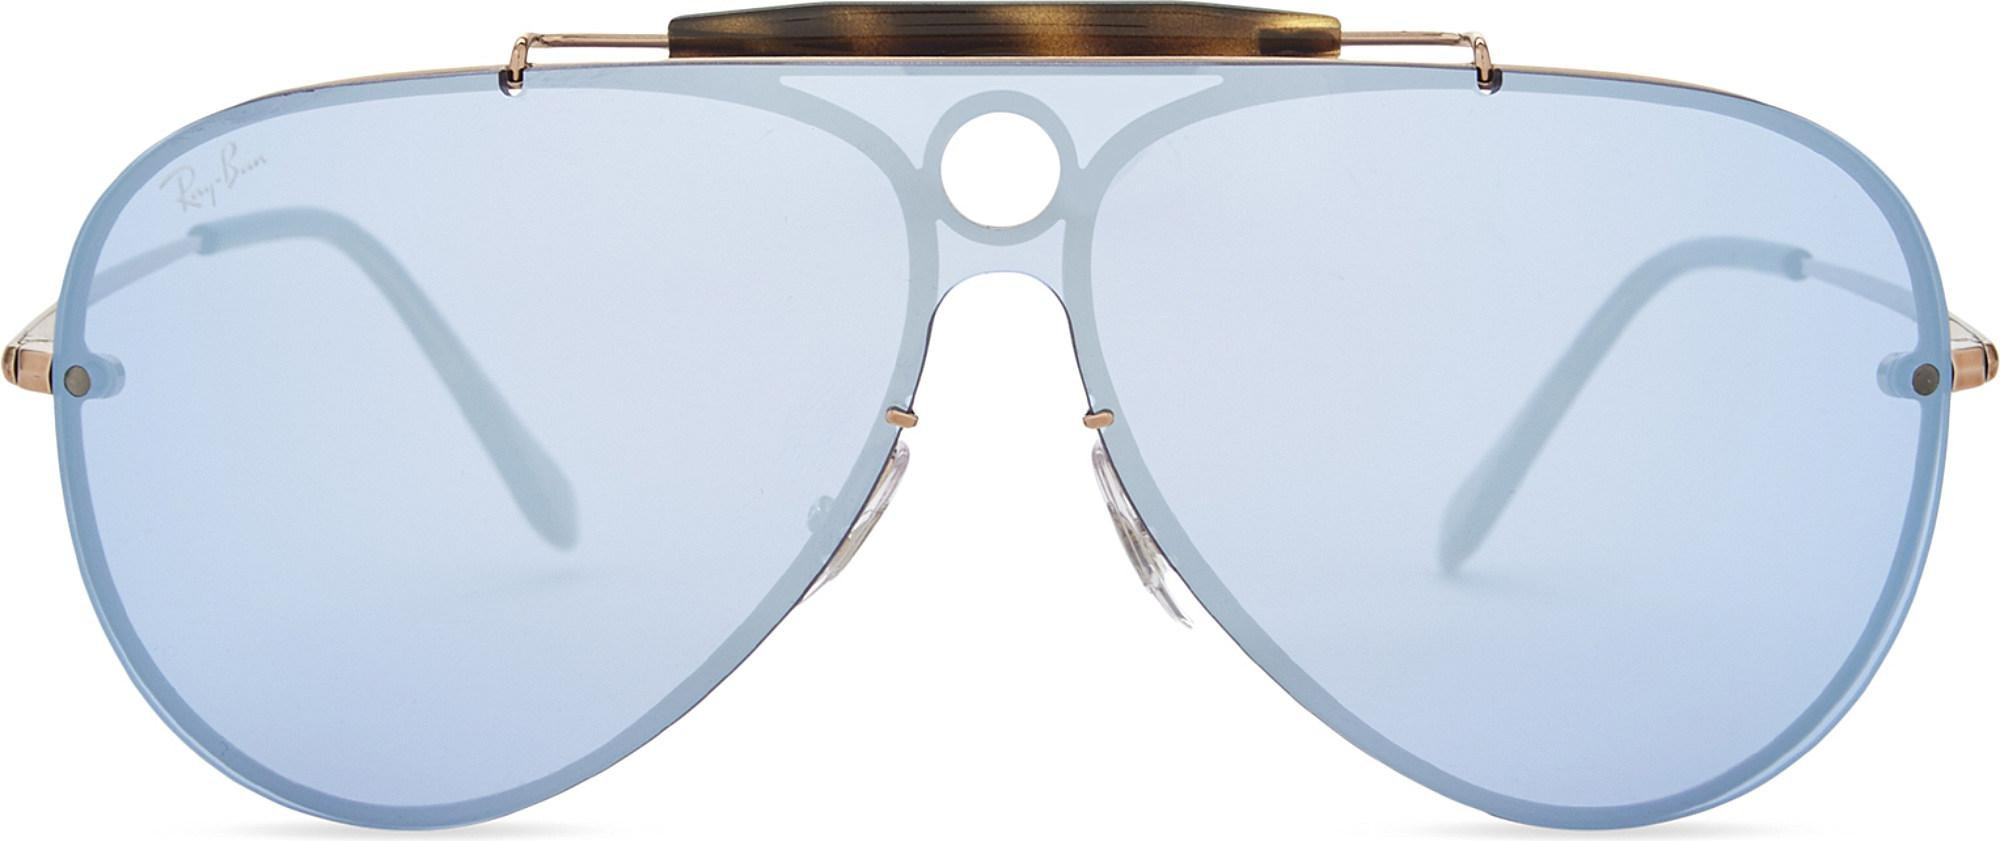 573a2c2440f52 Ray-Ban Rb3581 Blaze Shooter Pilot Sunglasses in Blue for Men - Lyst